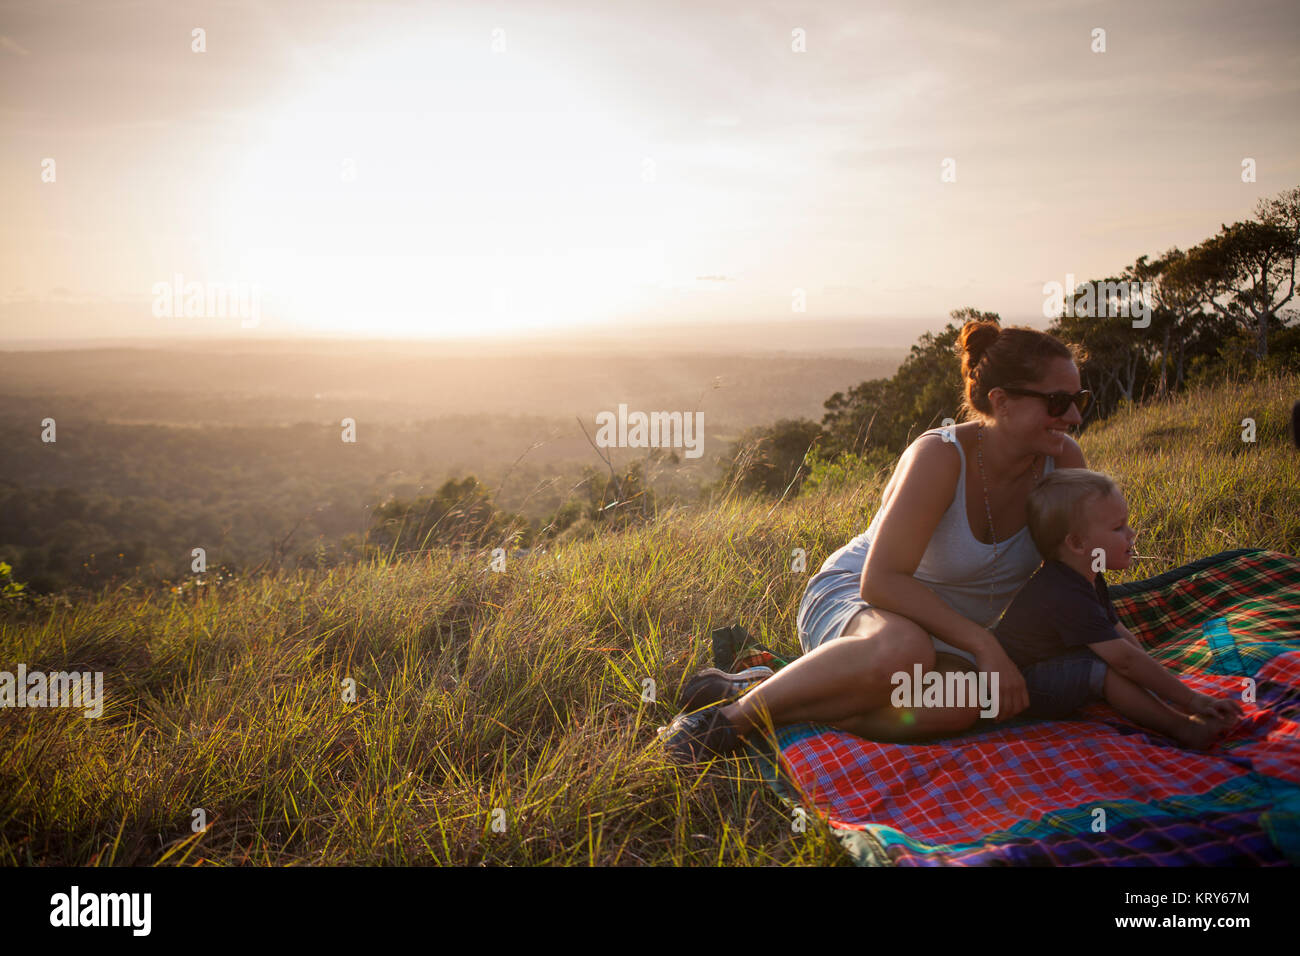 Mother and son sitting in a field in Kenya - Stock Image